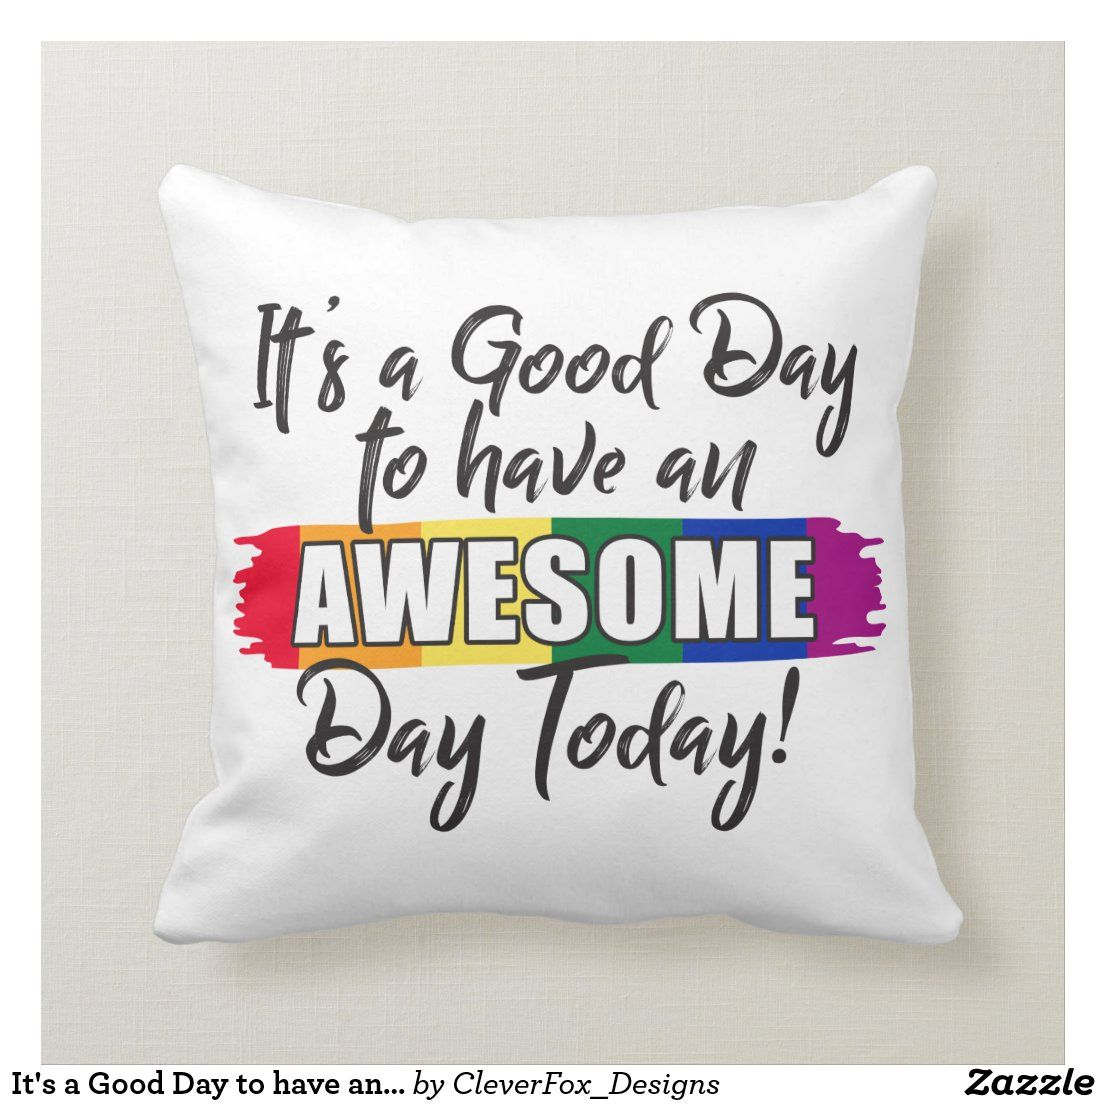 It's a Good Day to have an Awesome Day Today Throw Pillow